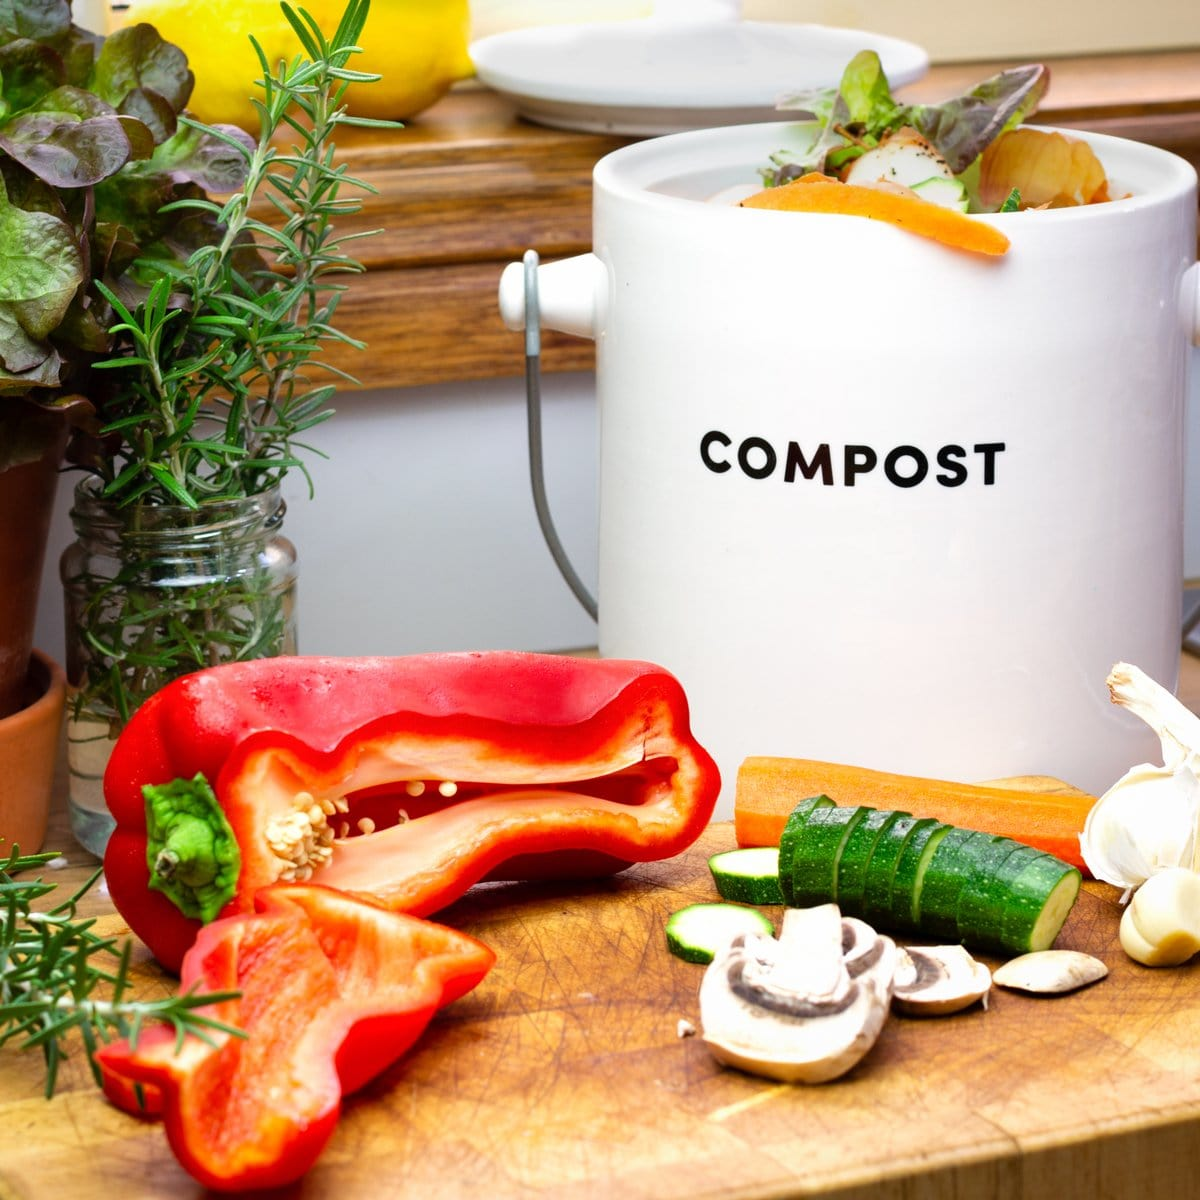 8 tips that will help you reduce food waste